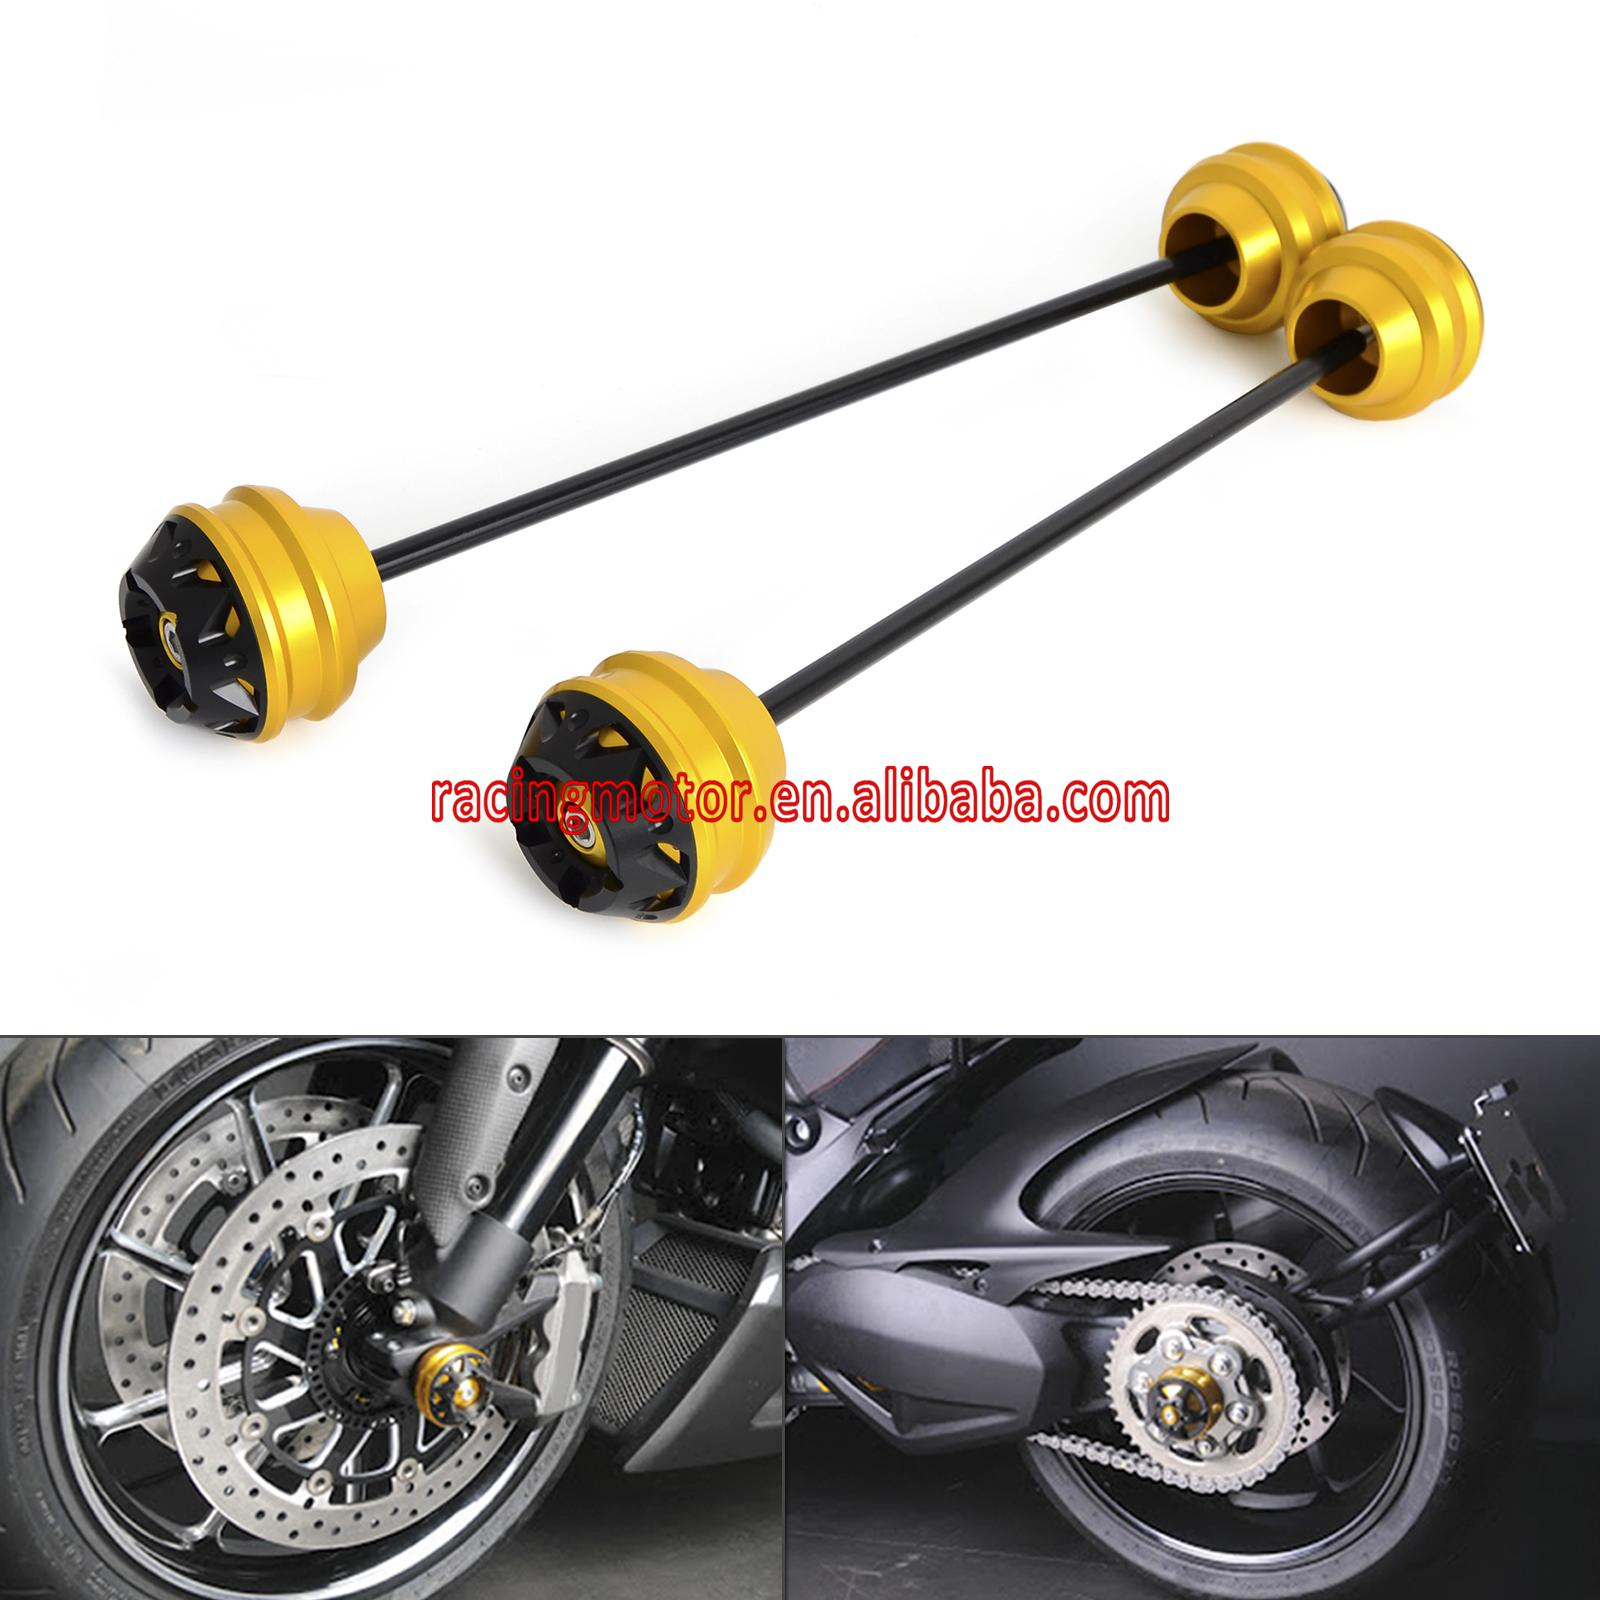 Frond & Rear Axle Sliders/ Swingarm Sliders for DUCATI Panigale 1199 2013-2015 Diavel 2011-2016 Superbike 1299 Panigale S 2015